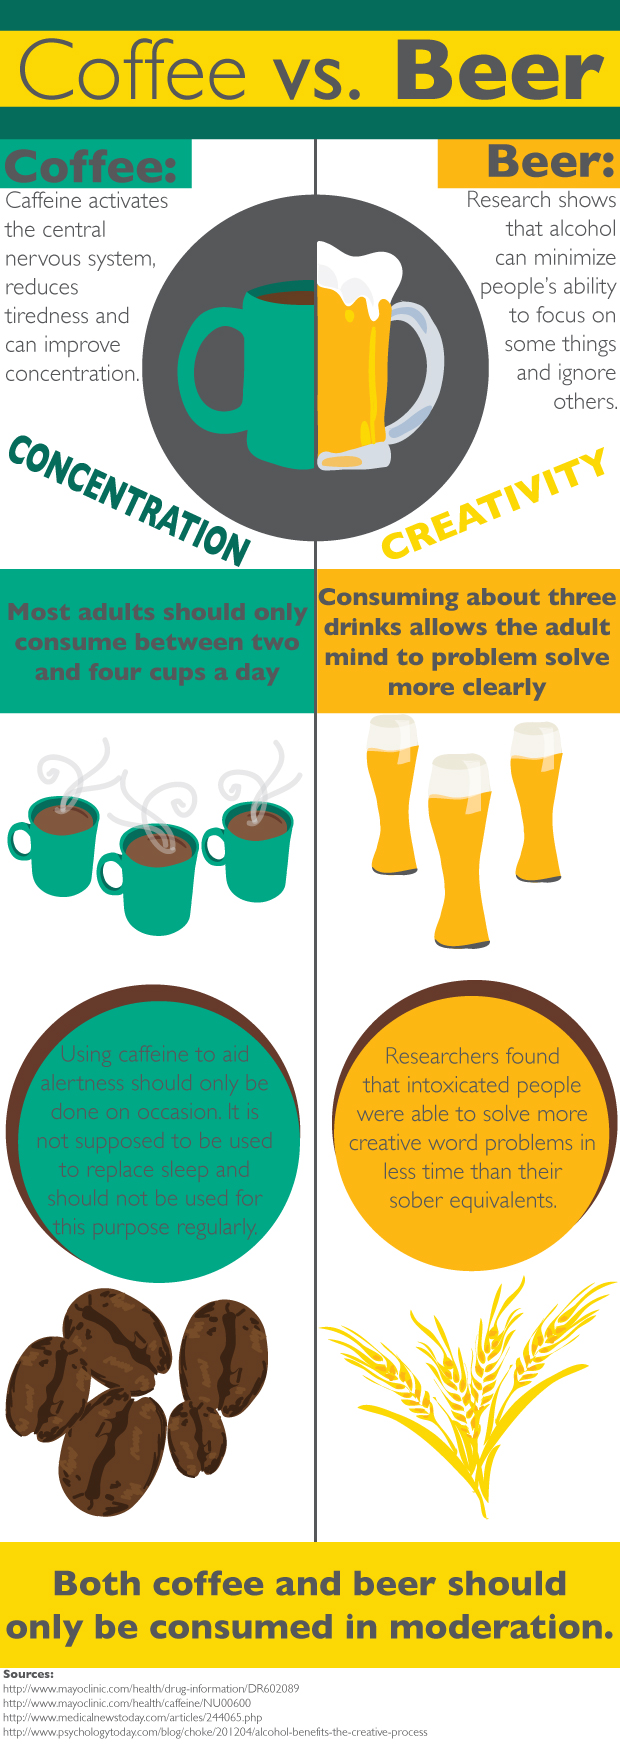 131017_Beer_vs_Coffee_infographic (1)